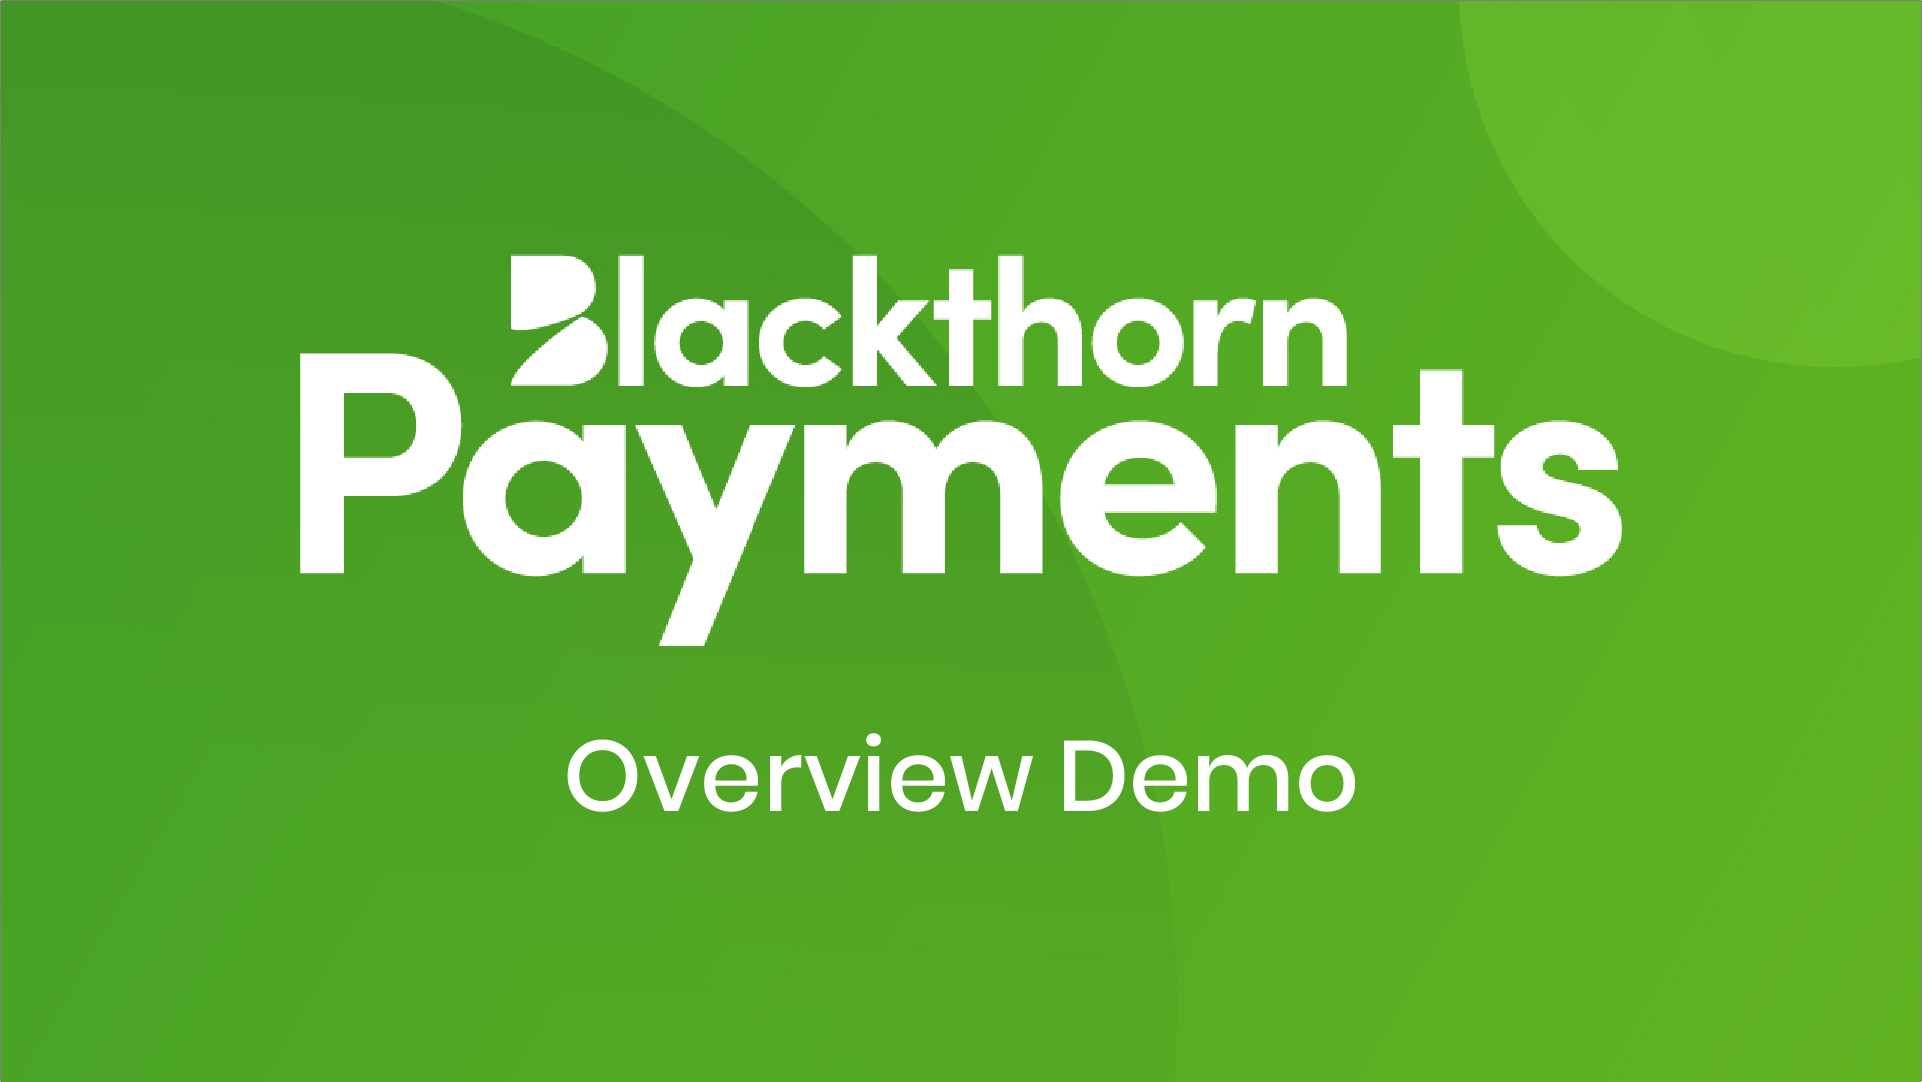 Blackthorn Payments Overview Demo